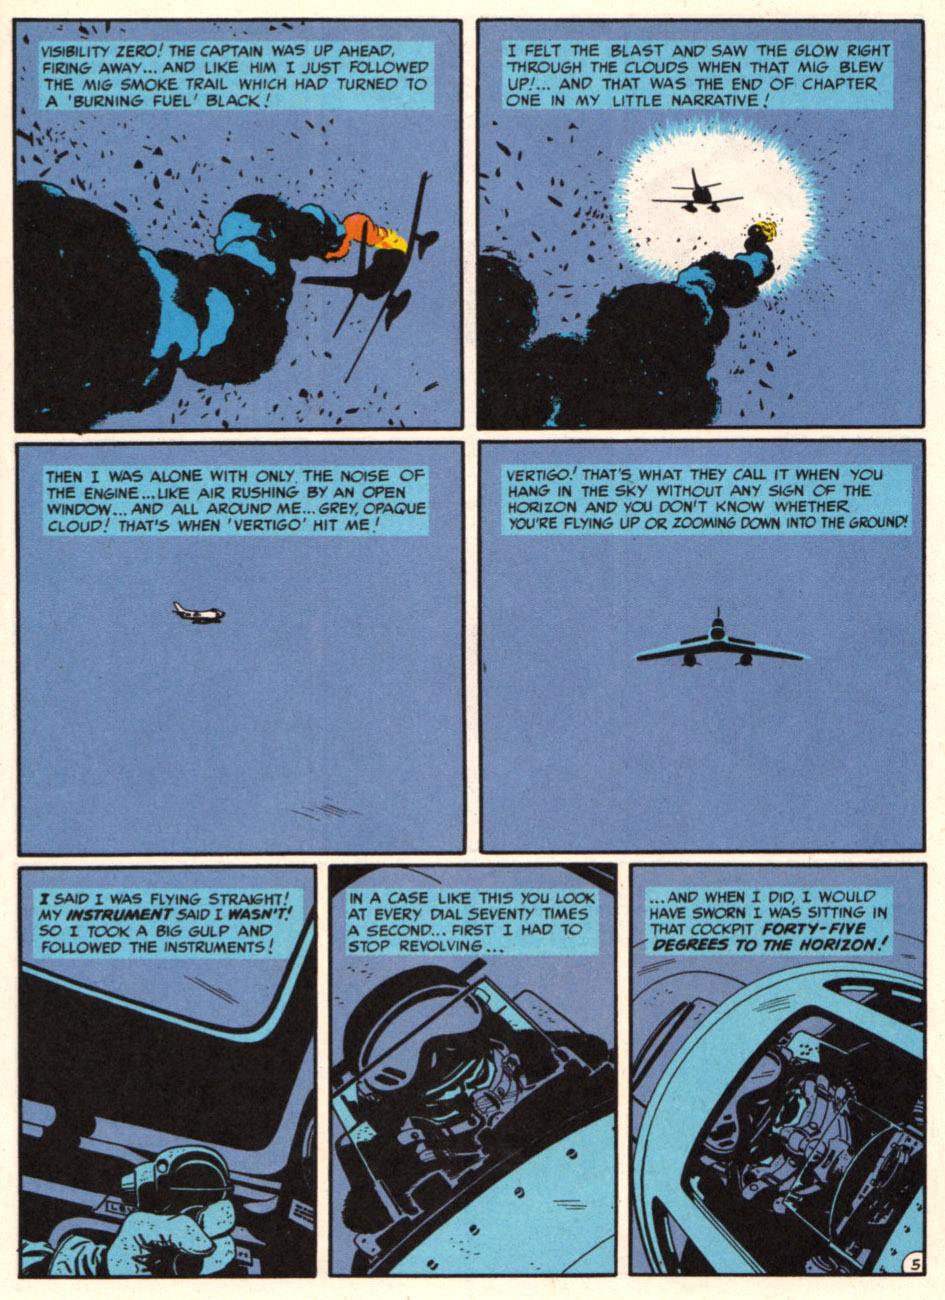 F86 Sabre Jet - Harvey Kurtzman and Alex Toth page 5